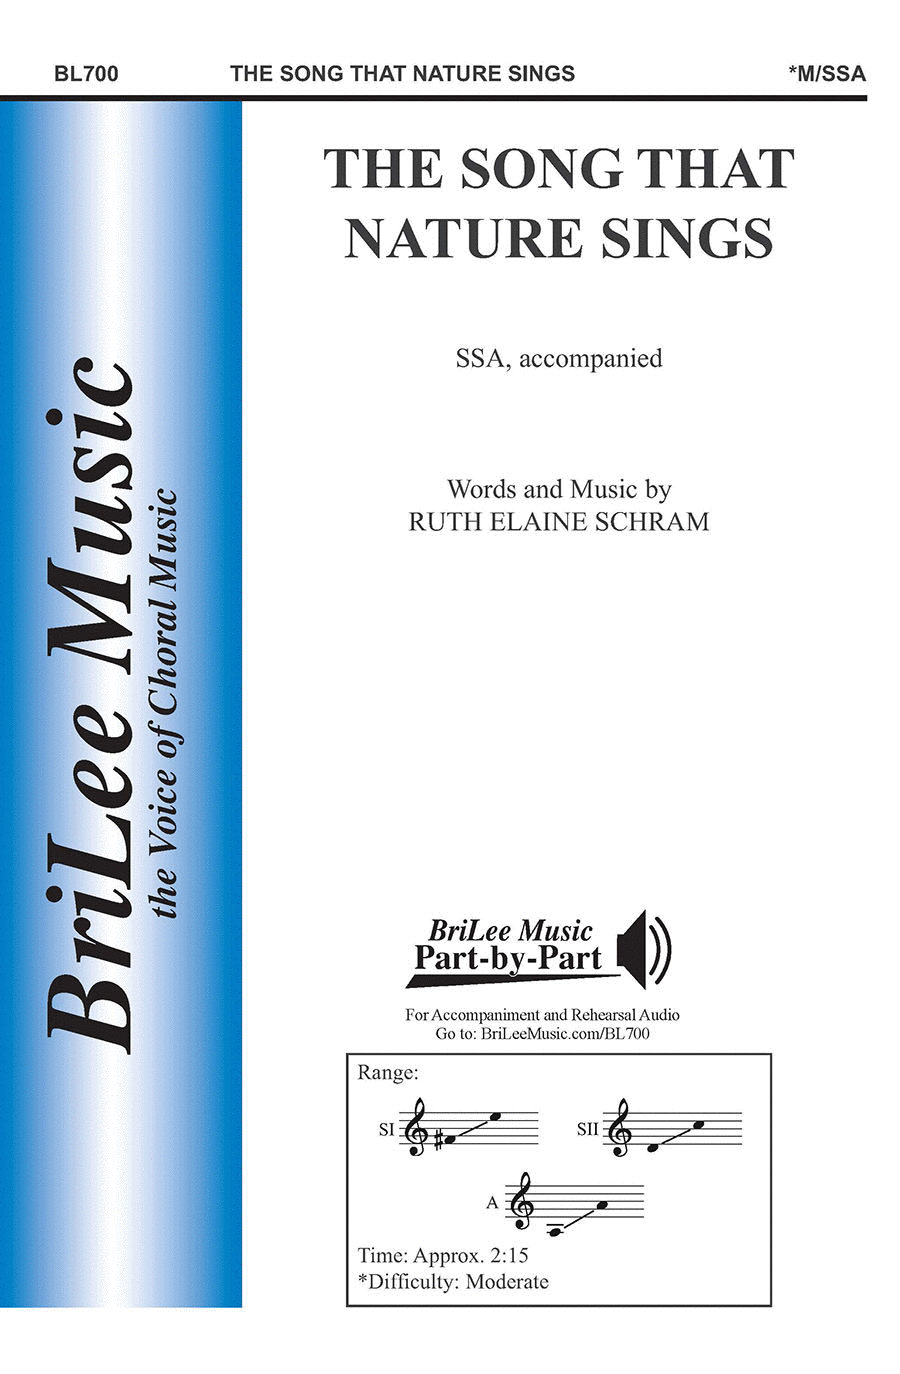 The Song That Nature Sings